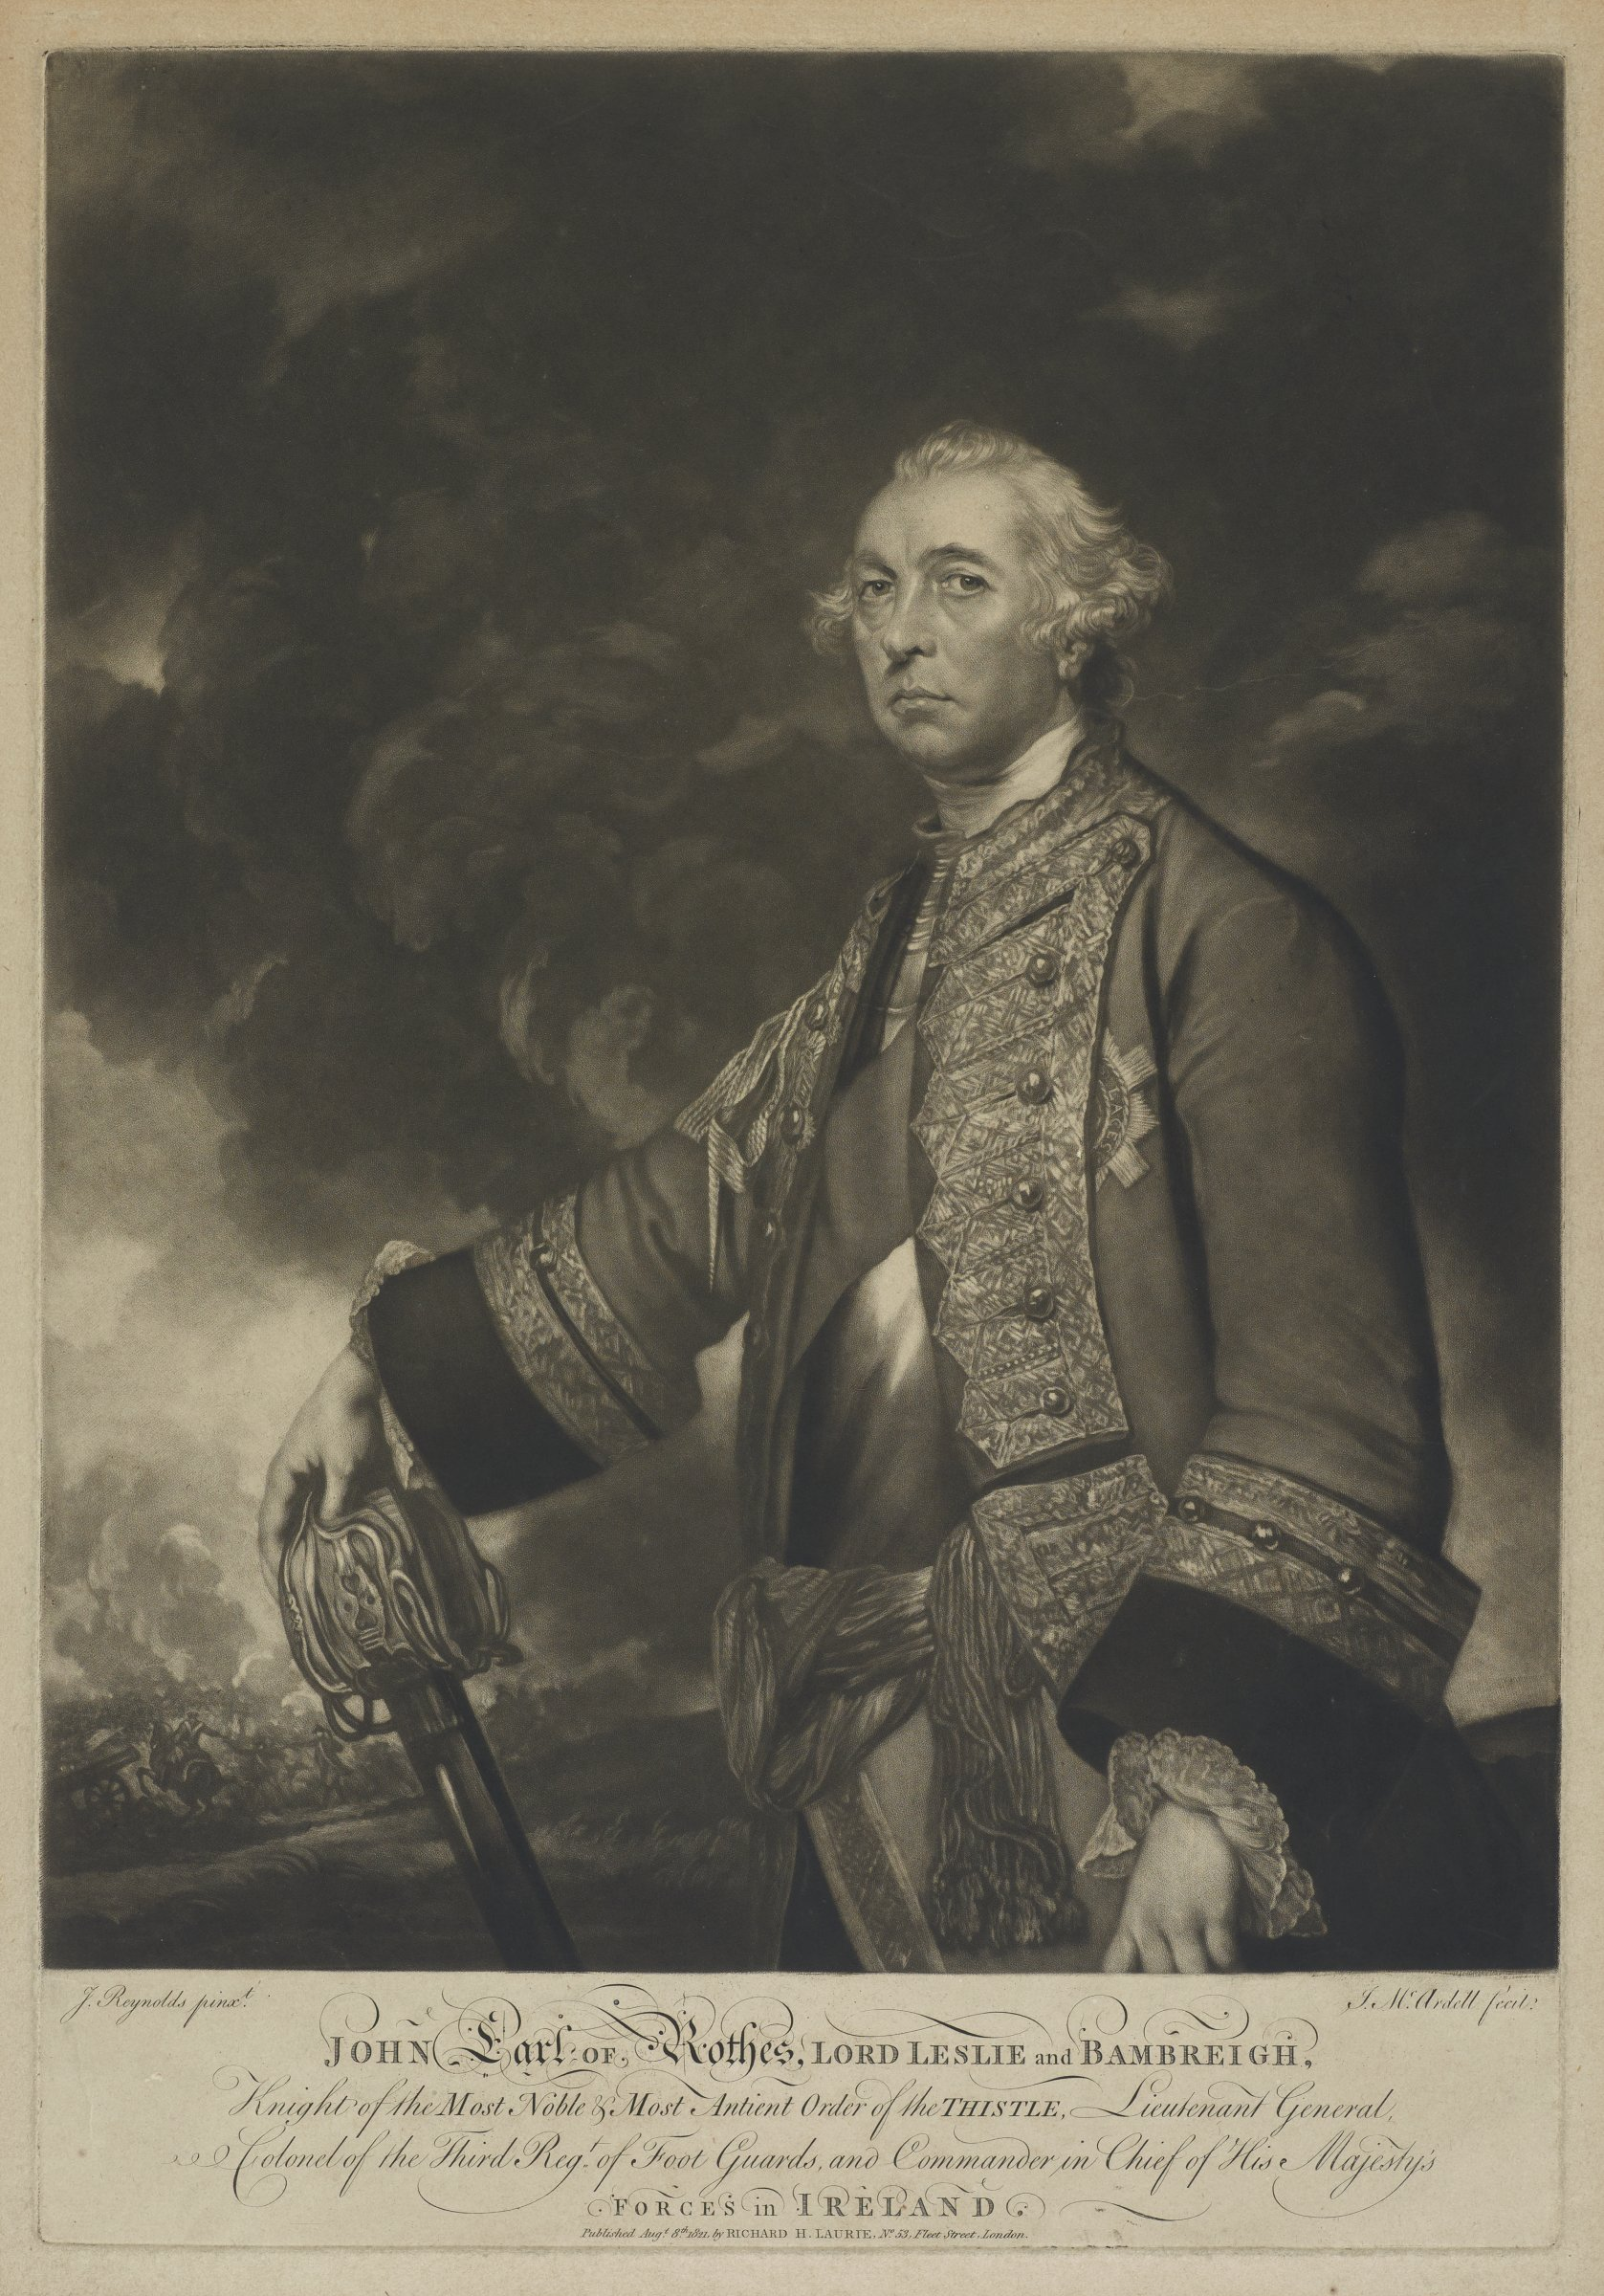 Three-fourths view portrait of John, Earl of Rothes. He is portrayed in uniform with his right hand resting on a weapon. A war scene is depicted behind him on the left.